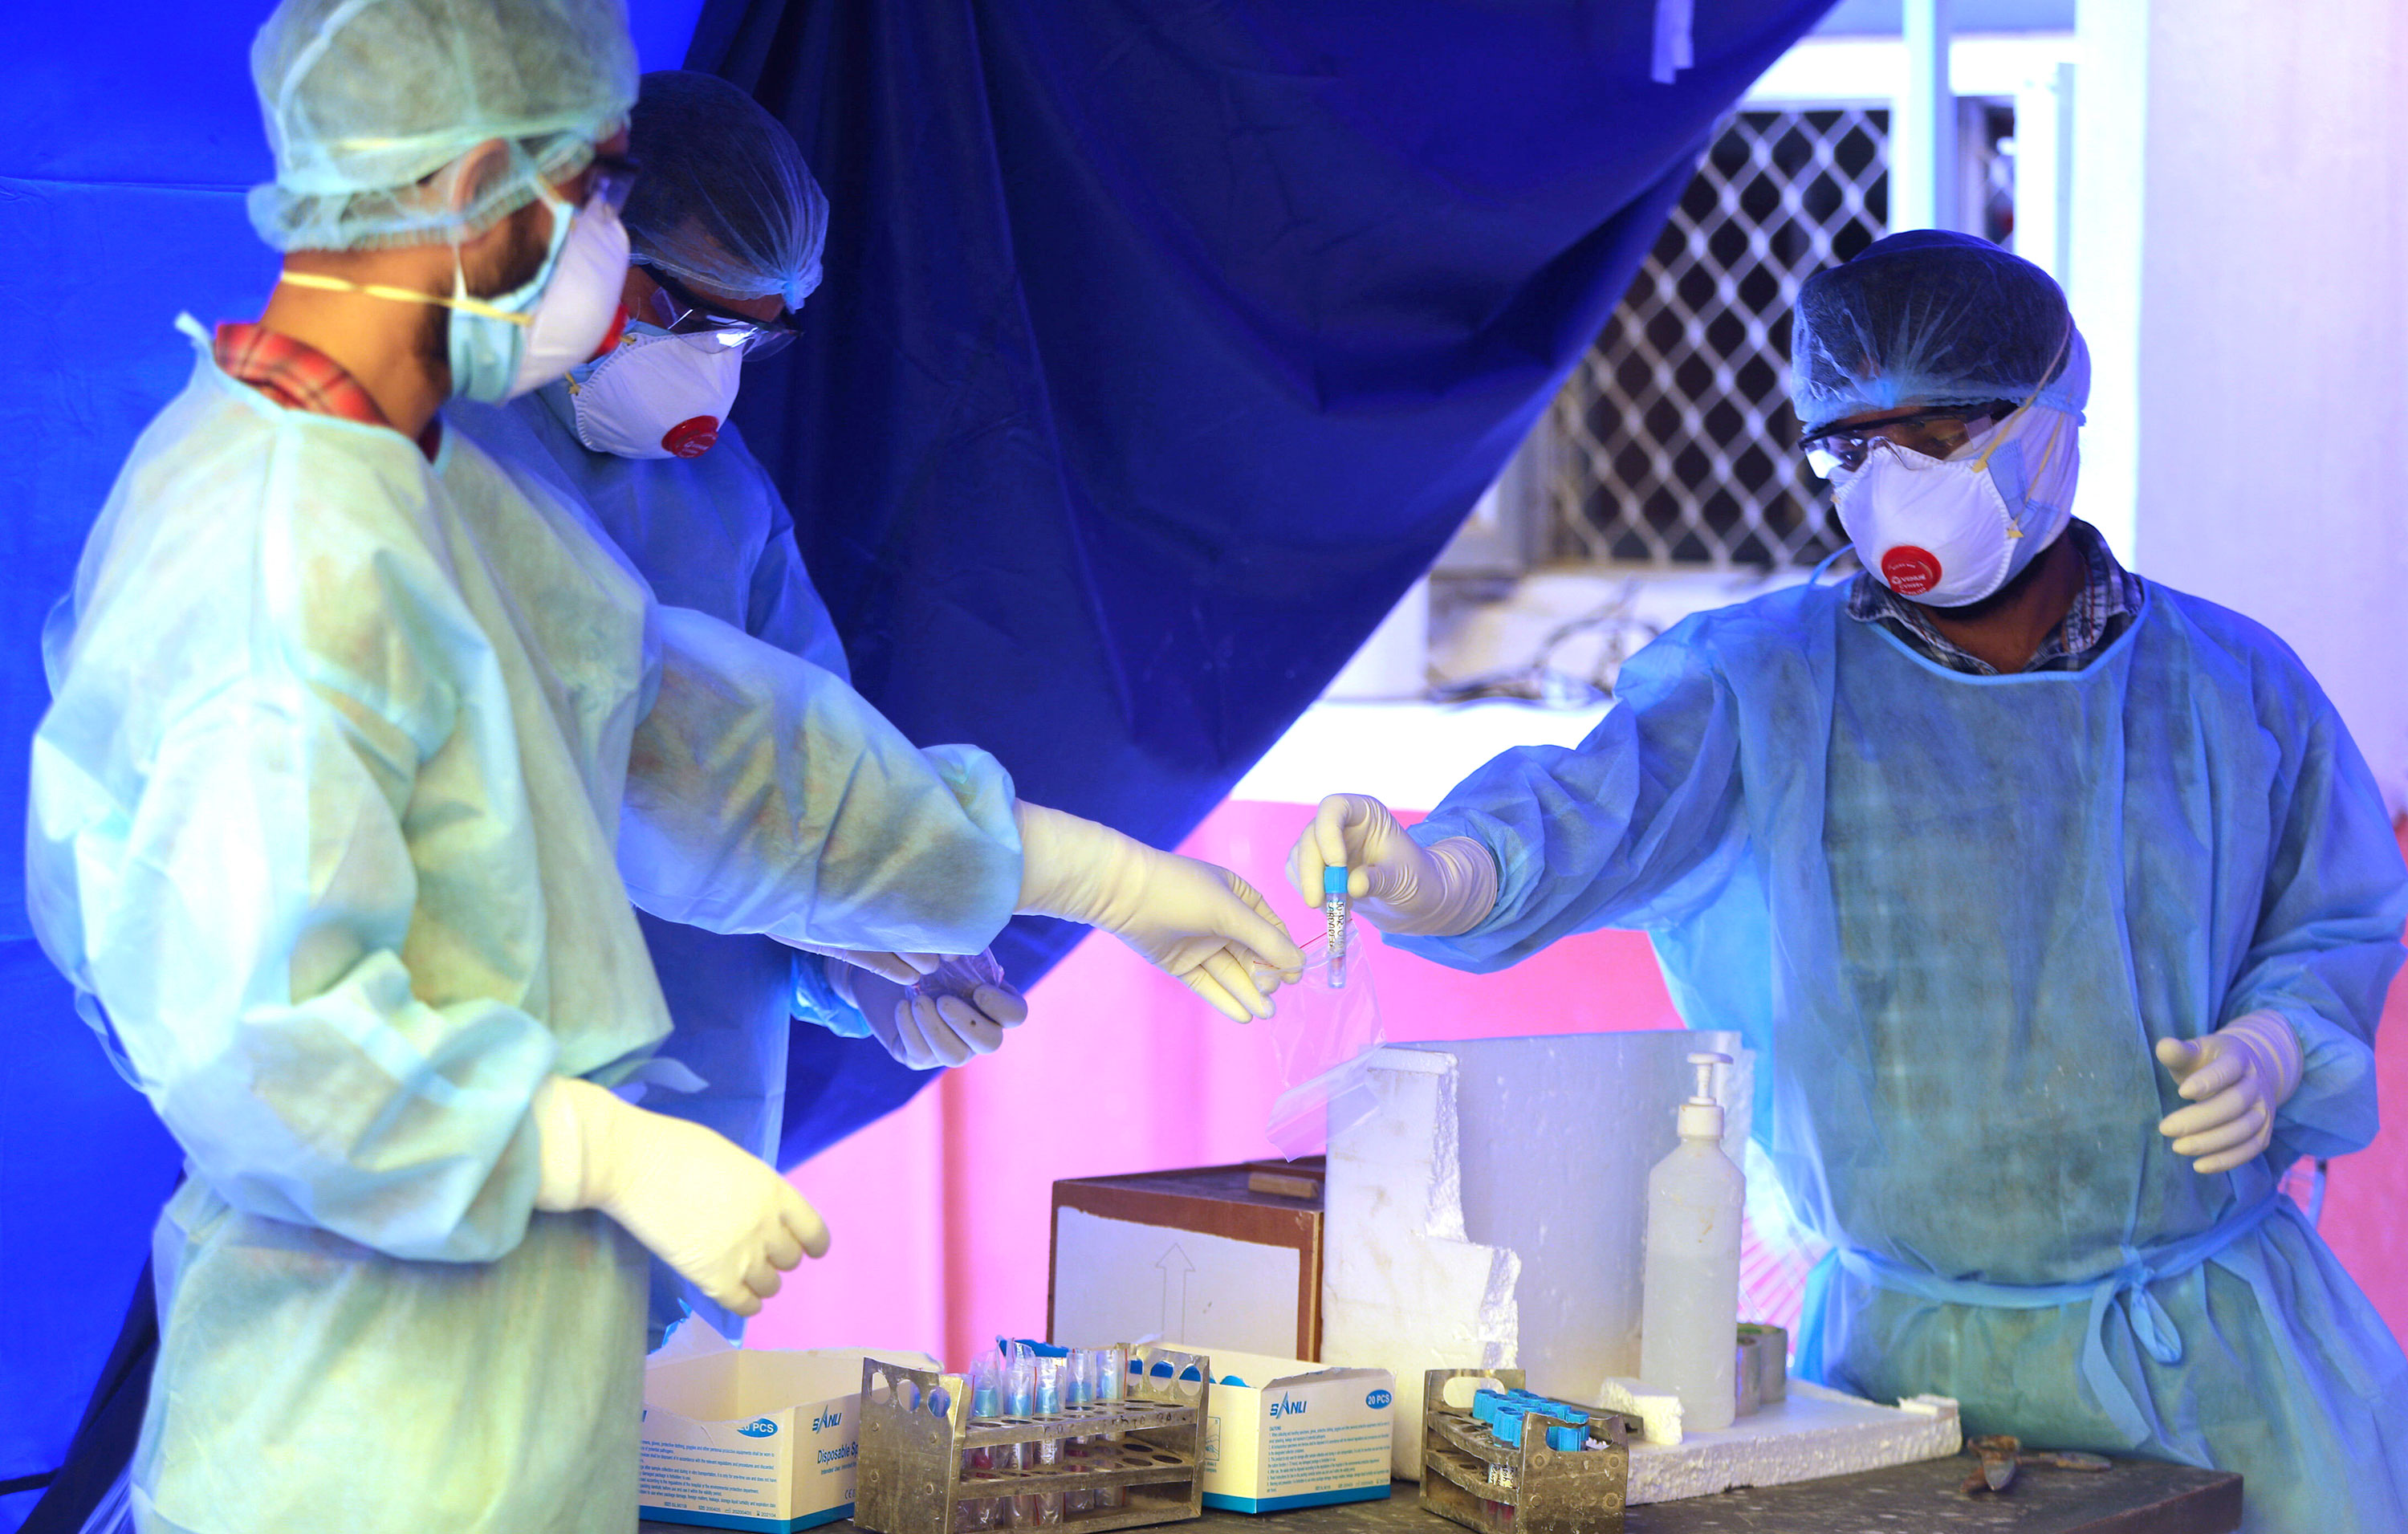 Health workers conduct coronavirus tests at a hospital in Jammu, India, on May 18.